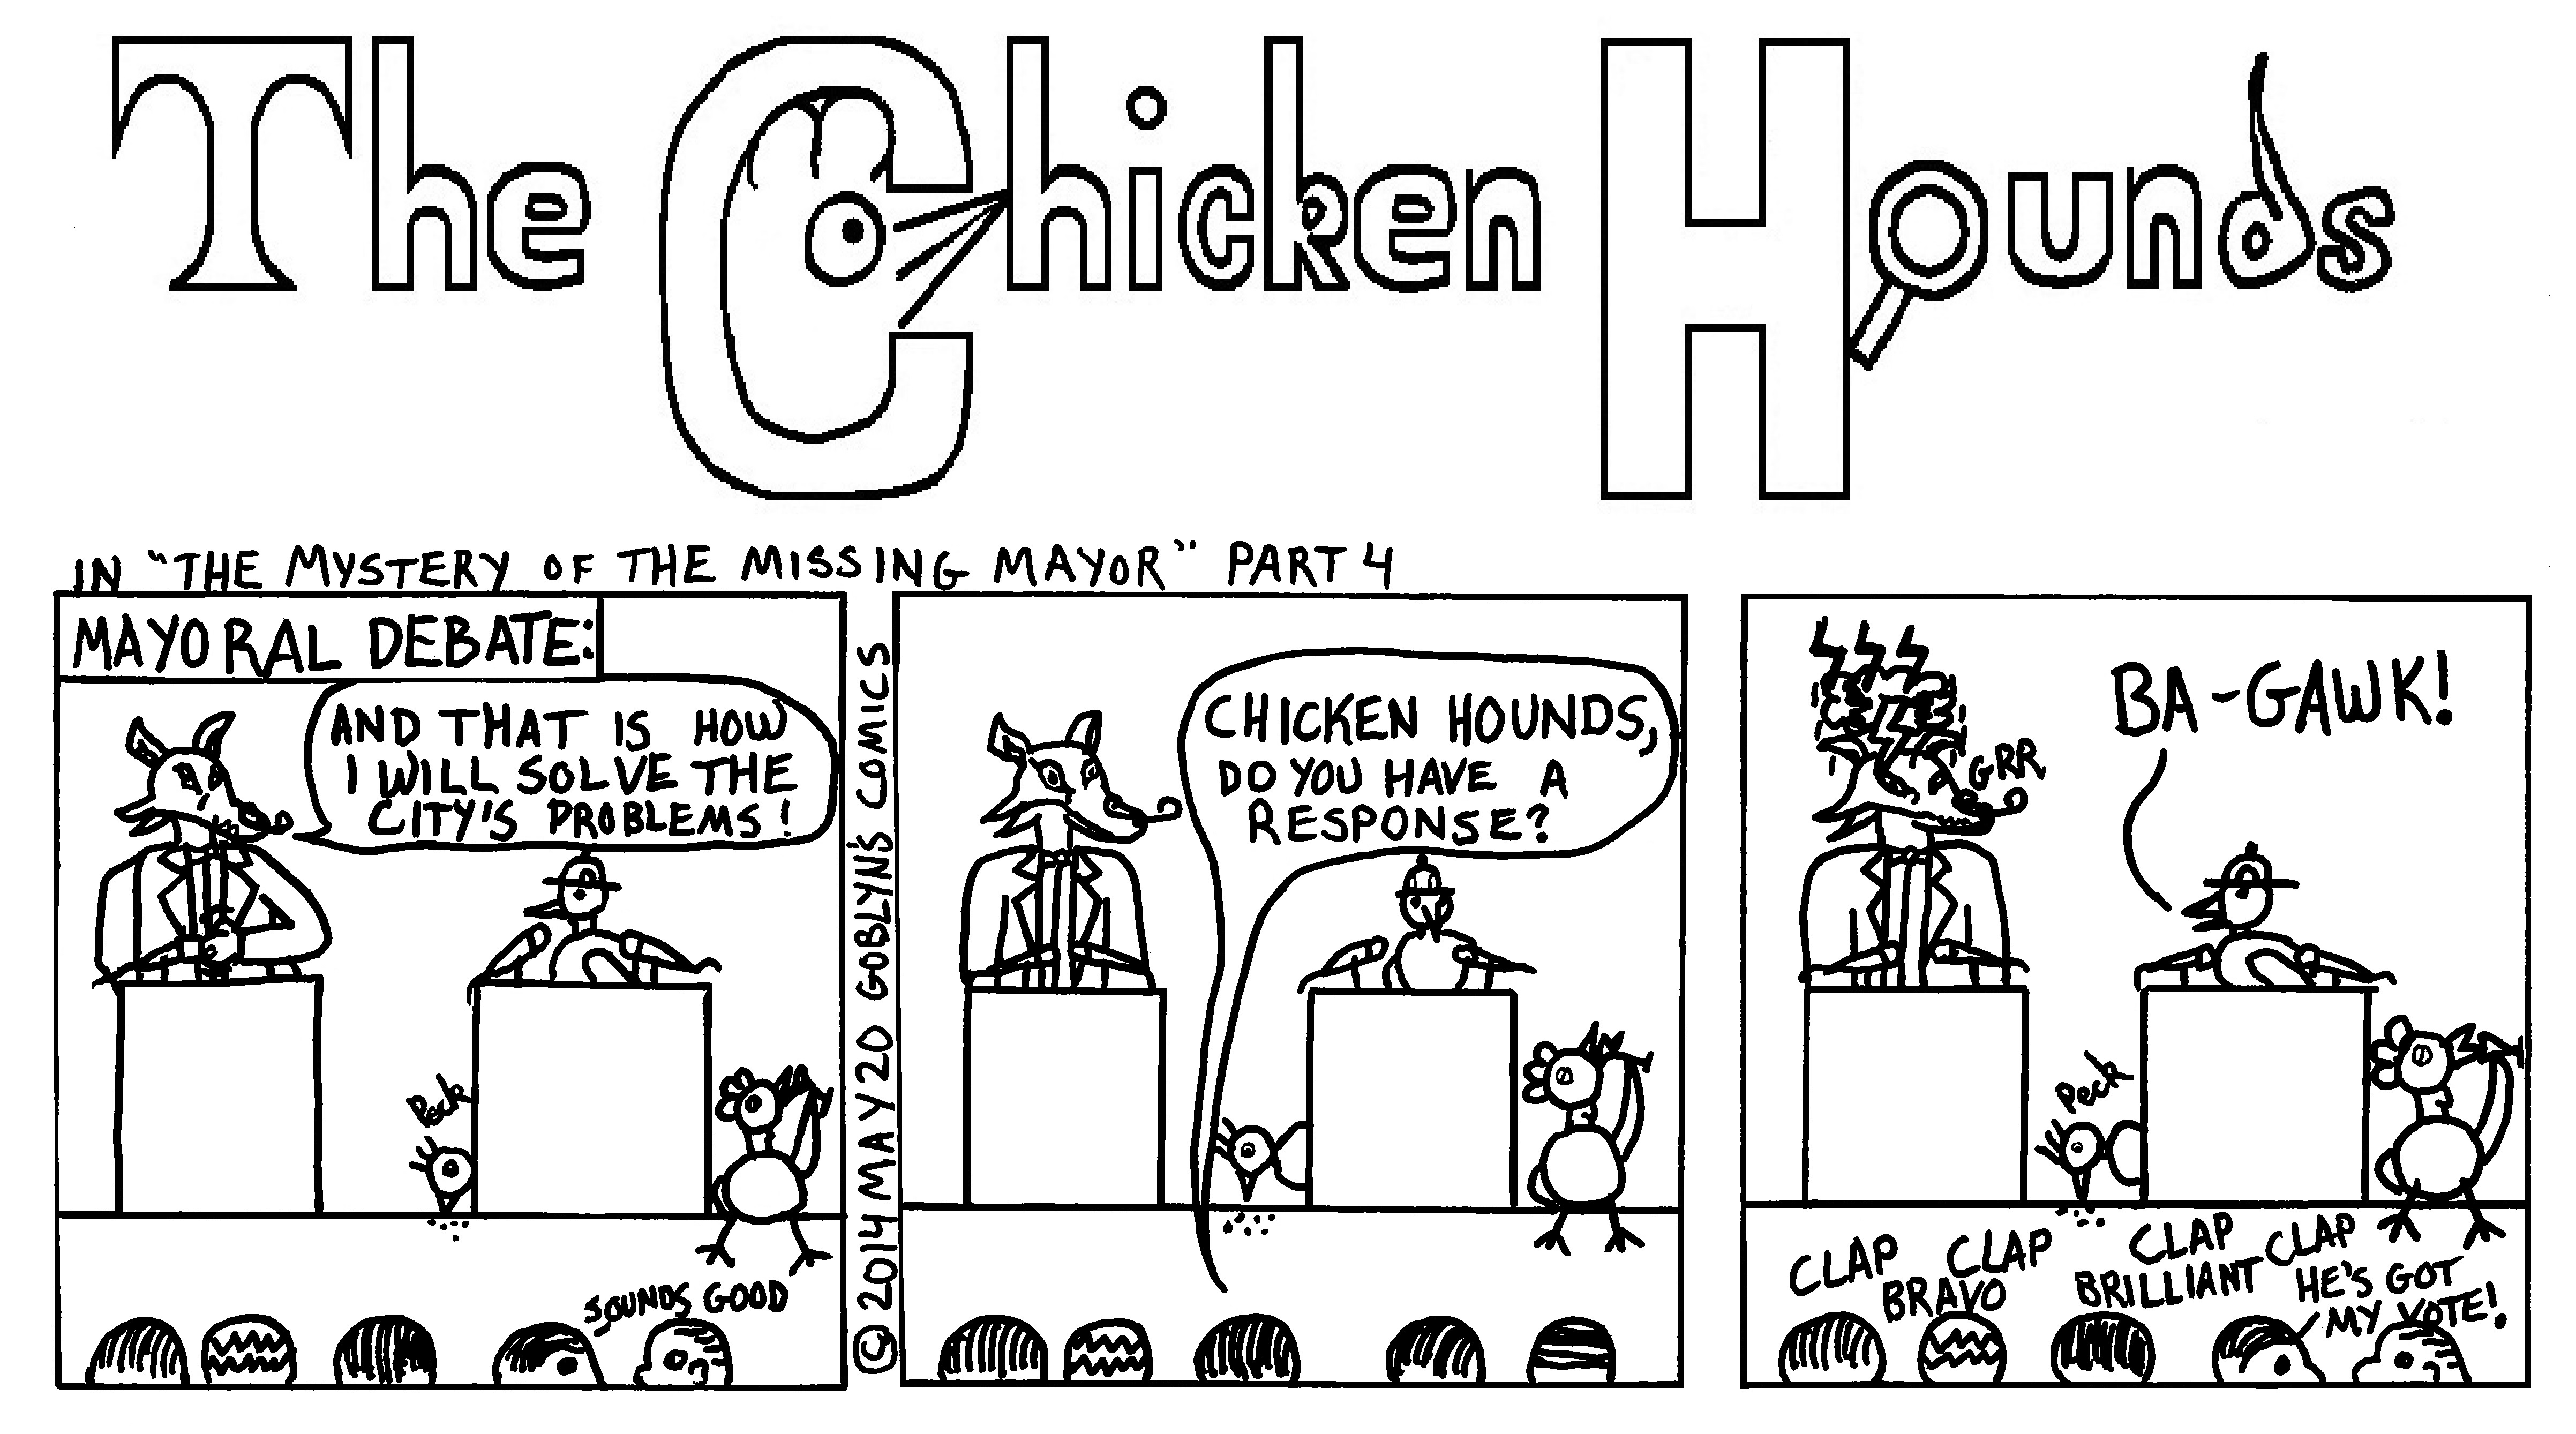 The Chicken Hounds in the Mystery of the Missing Mayor Part 4. Francisco Fox and the Chicken Hounds have a debate about their direction for San Francisco